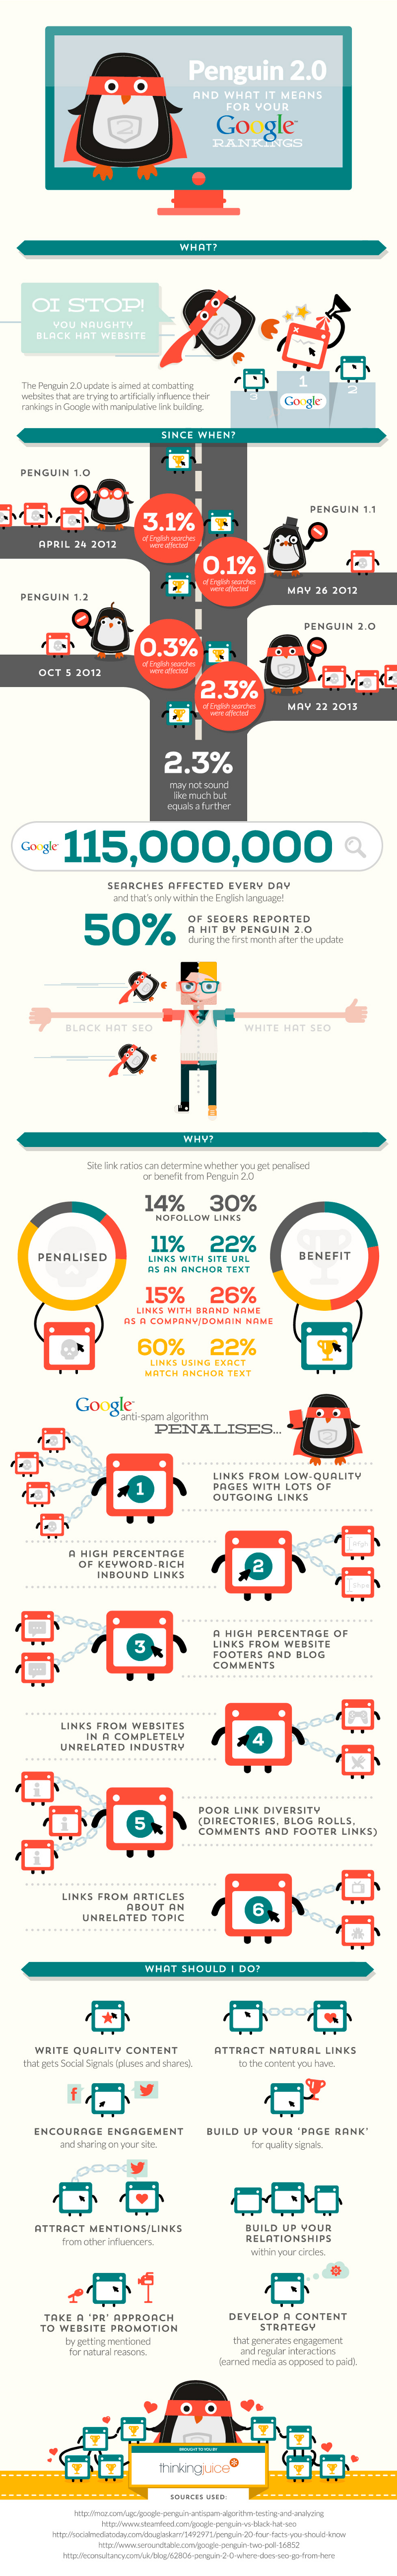 Penguin 2.0 and What it Means for Your Google Rankings